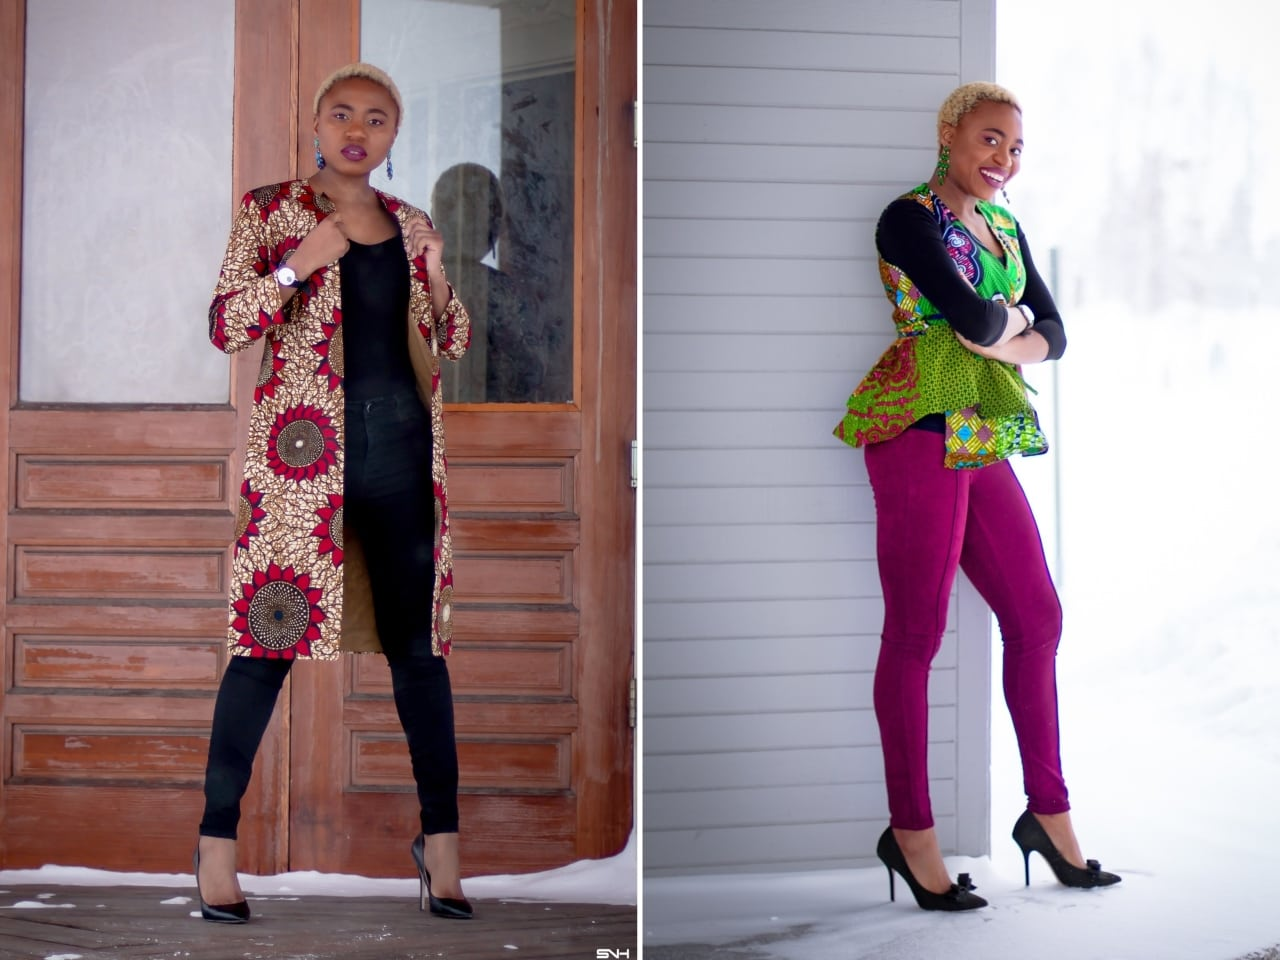 d8e5644a347d64 The Best African Outfits for Women. Fashion blogger